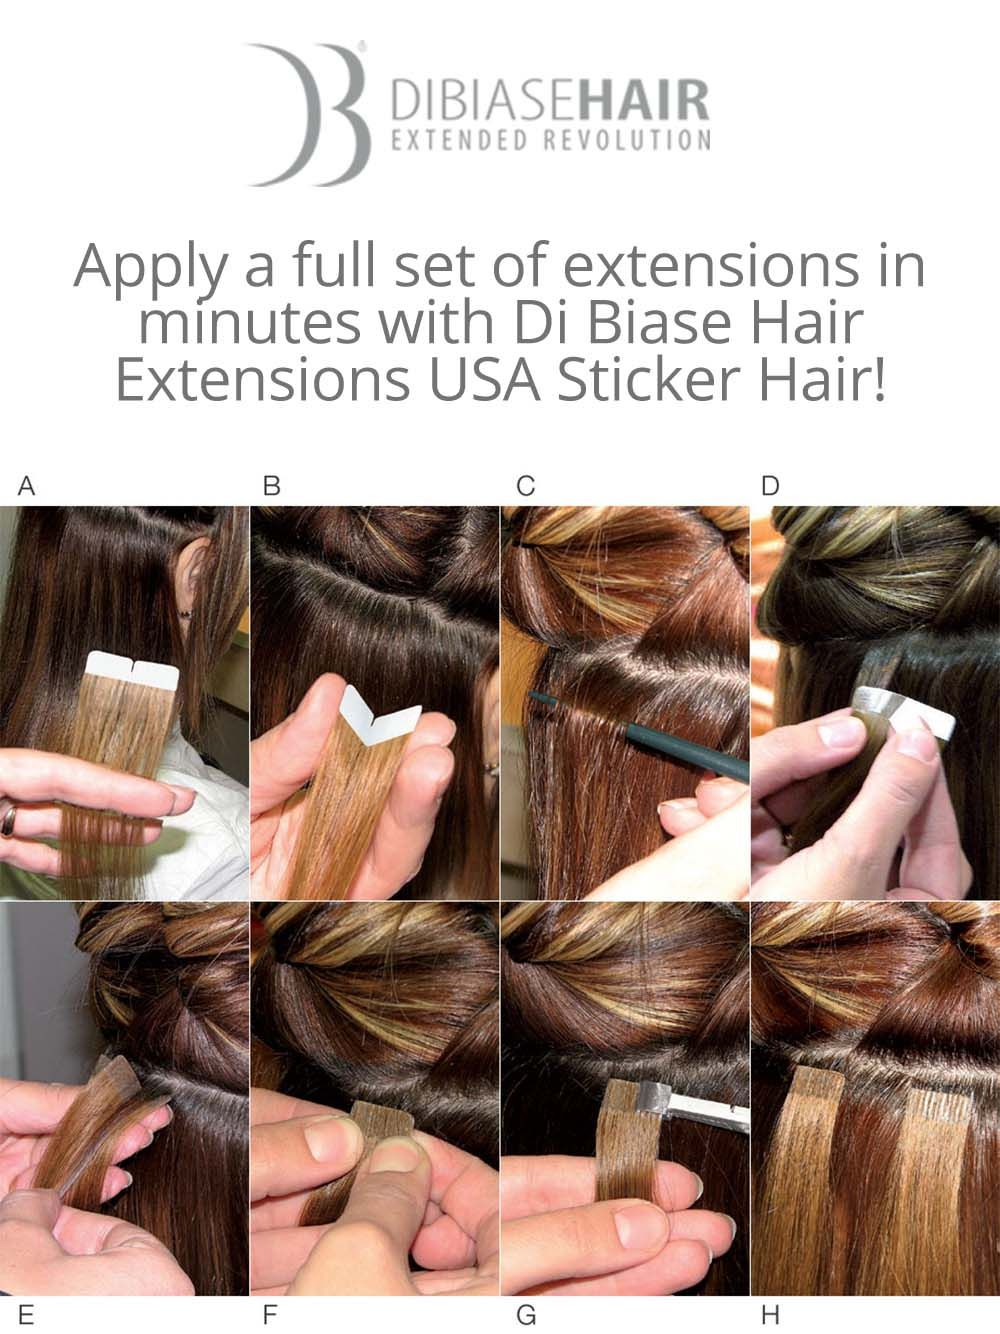 Di Biase Hair Extensions Usa Sticker Hair Is Awesome Apply A Full